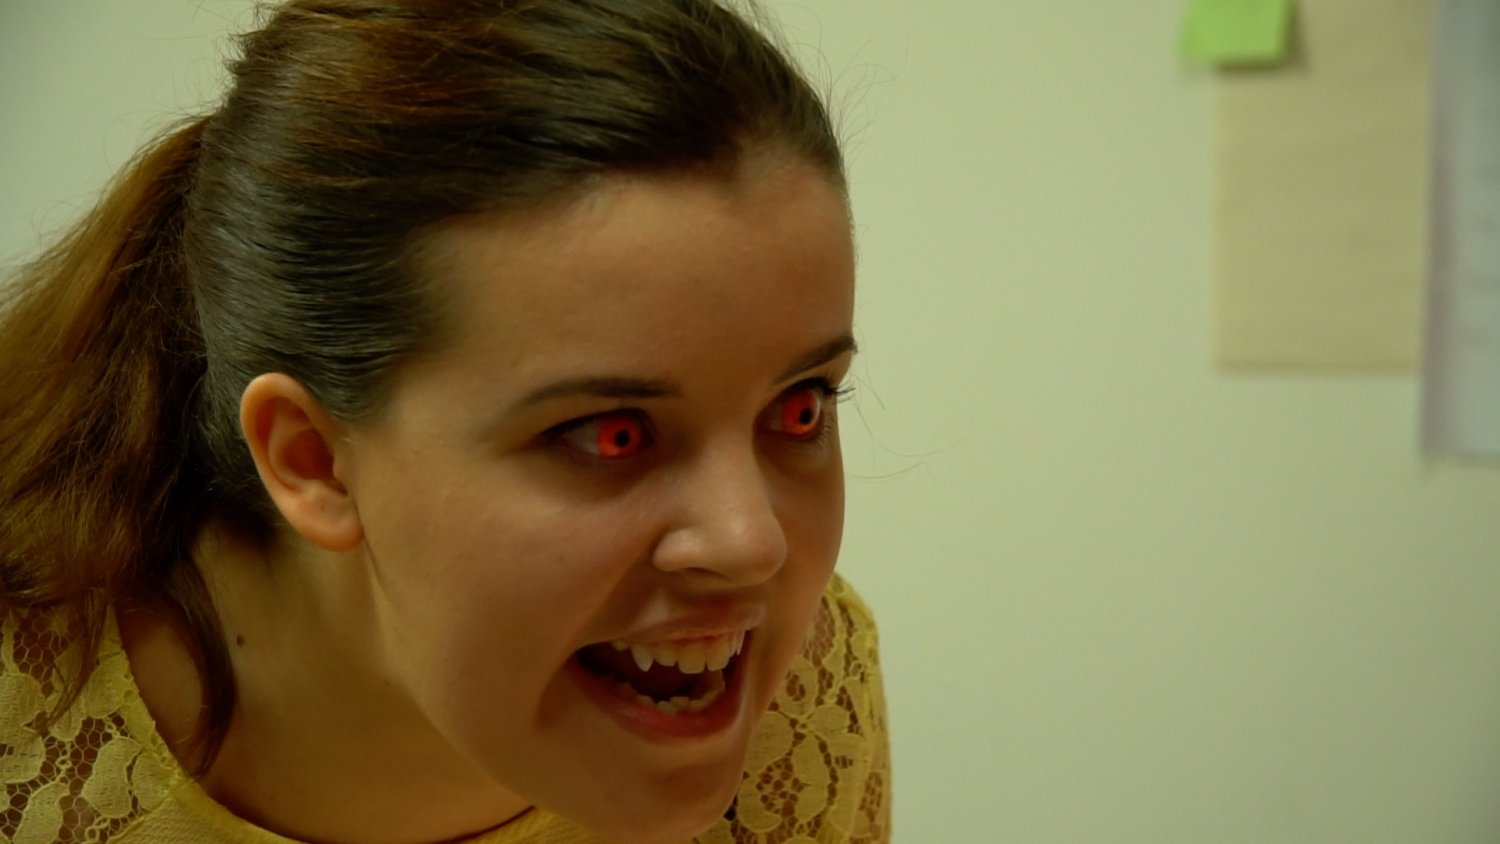 Alicia bares her fangs